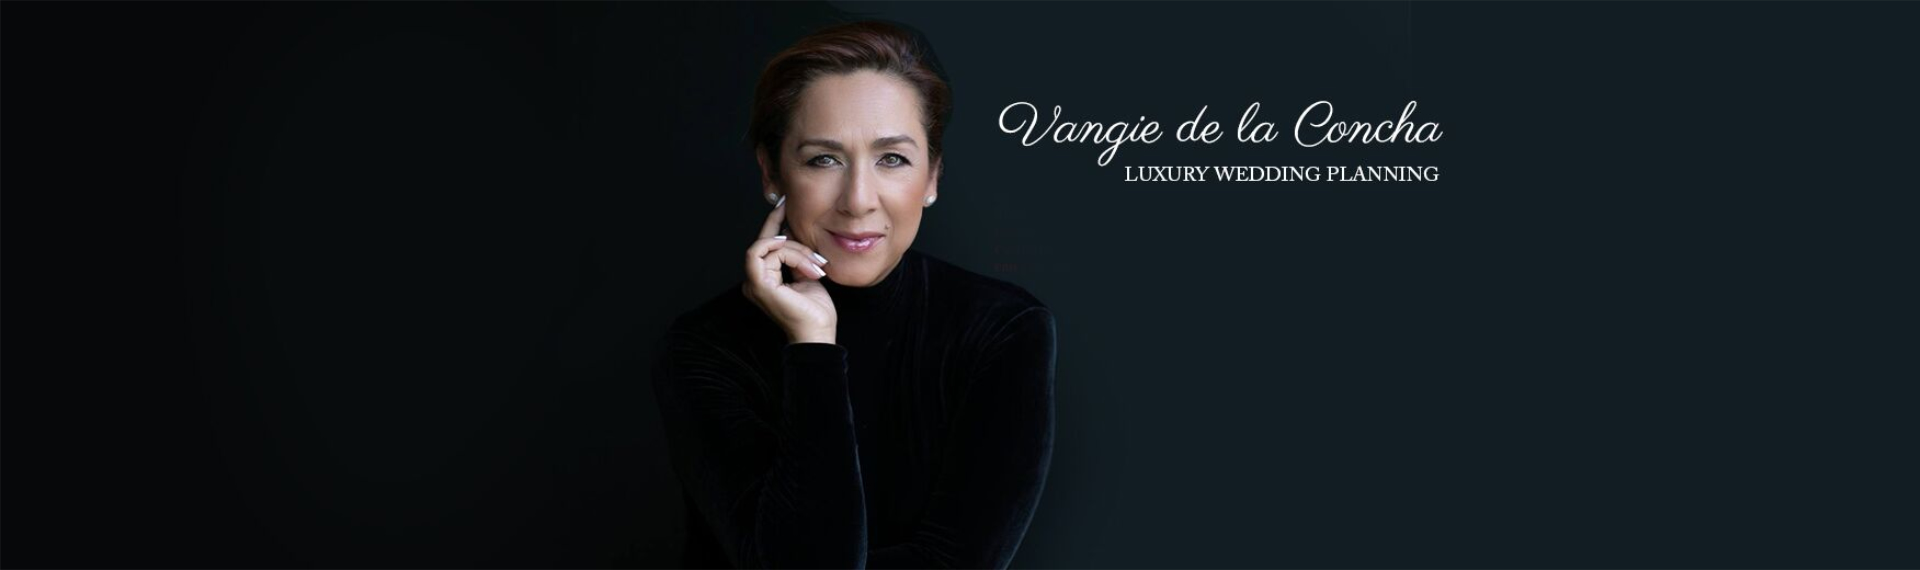 Vangie de la concha luxury wedding planner